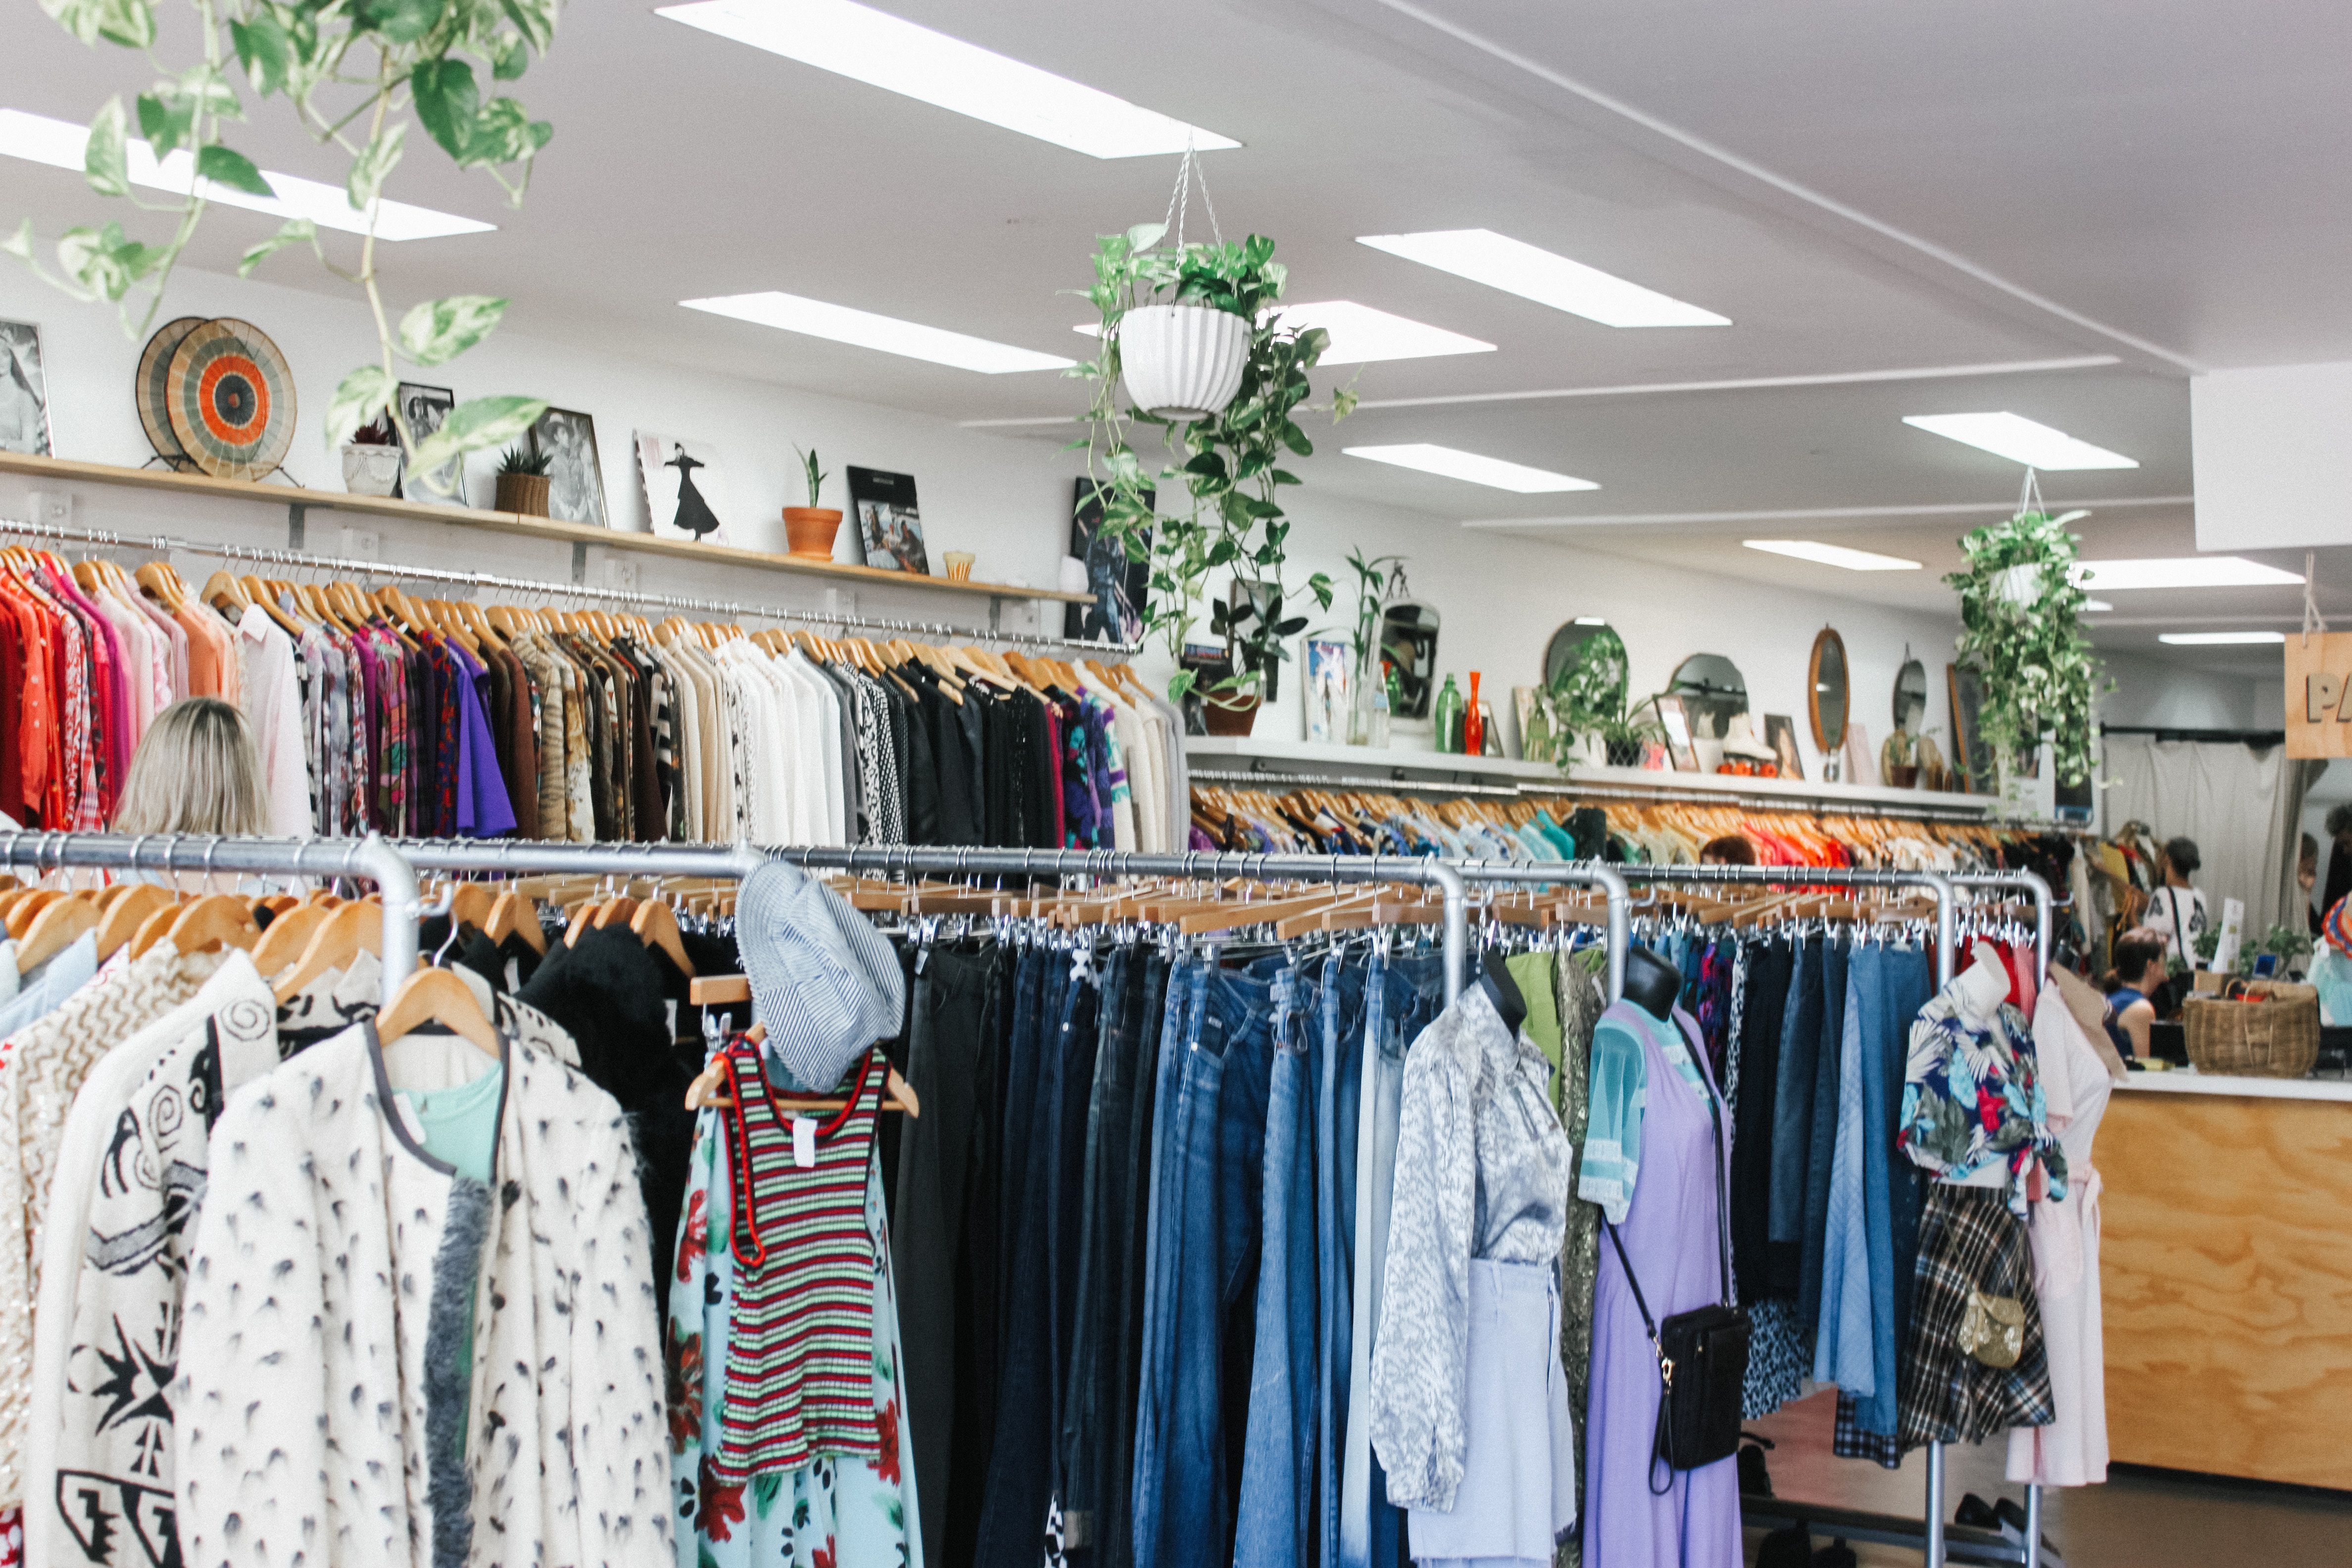 Thrift store with racks of used clothing and hanging plants